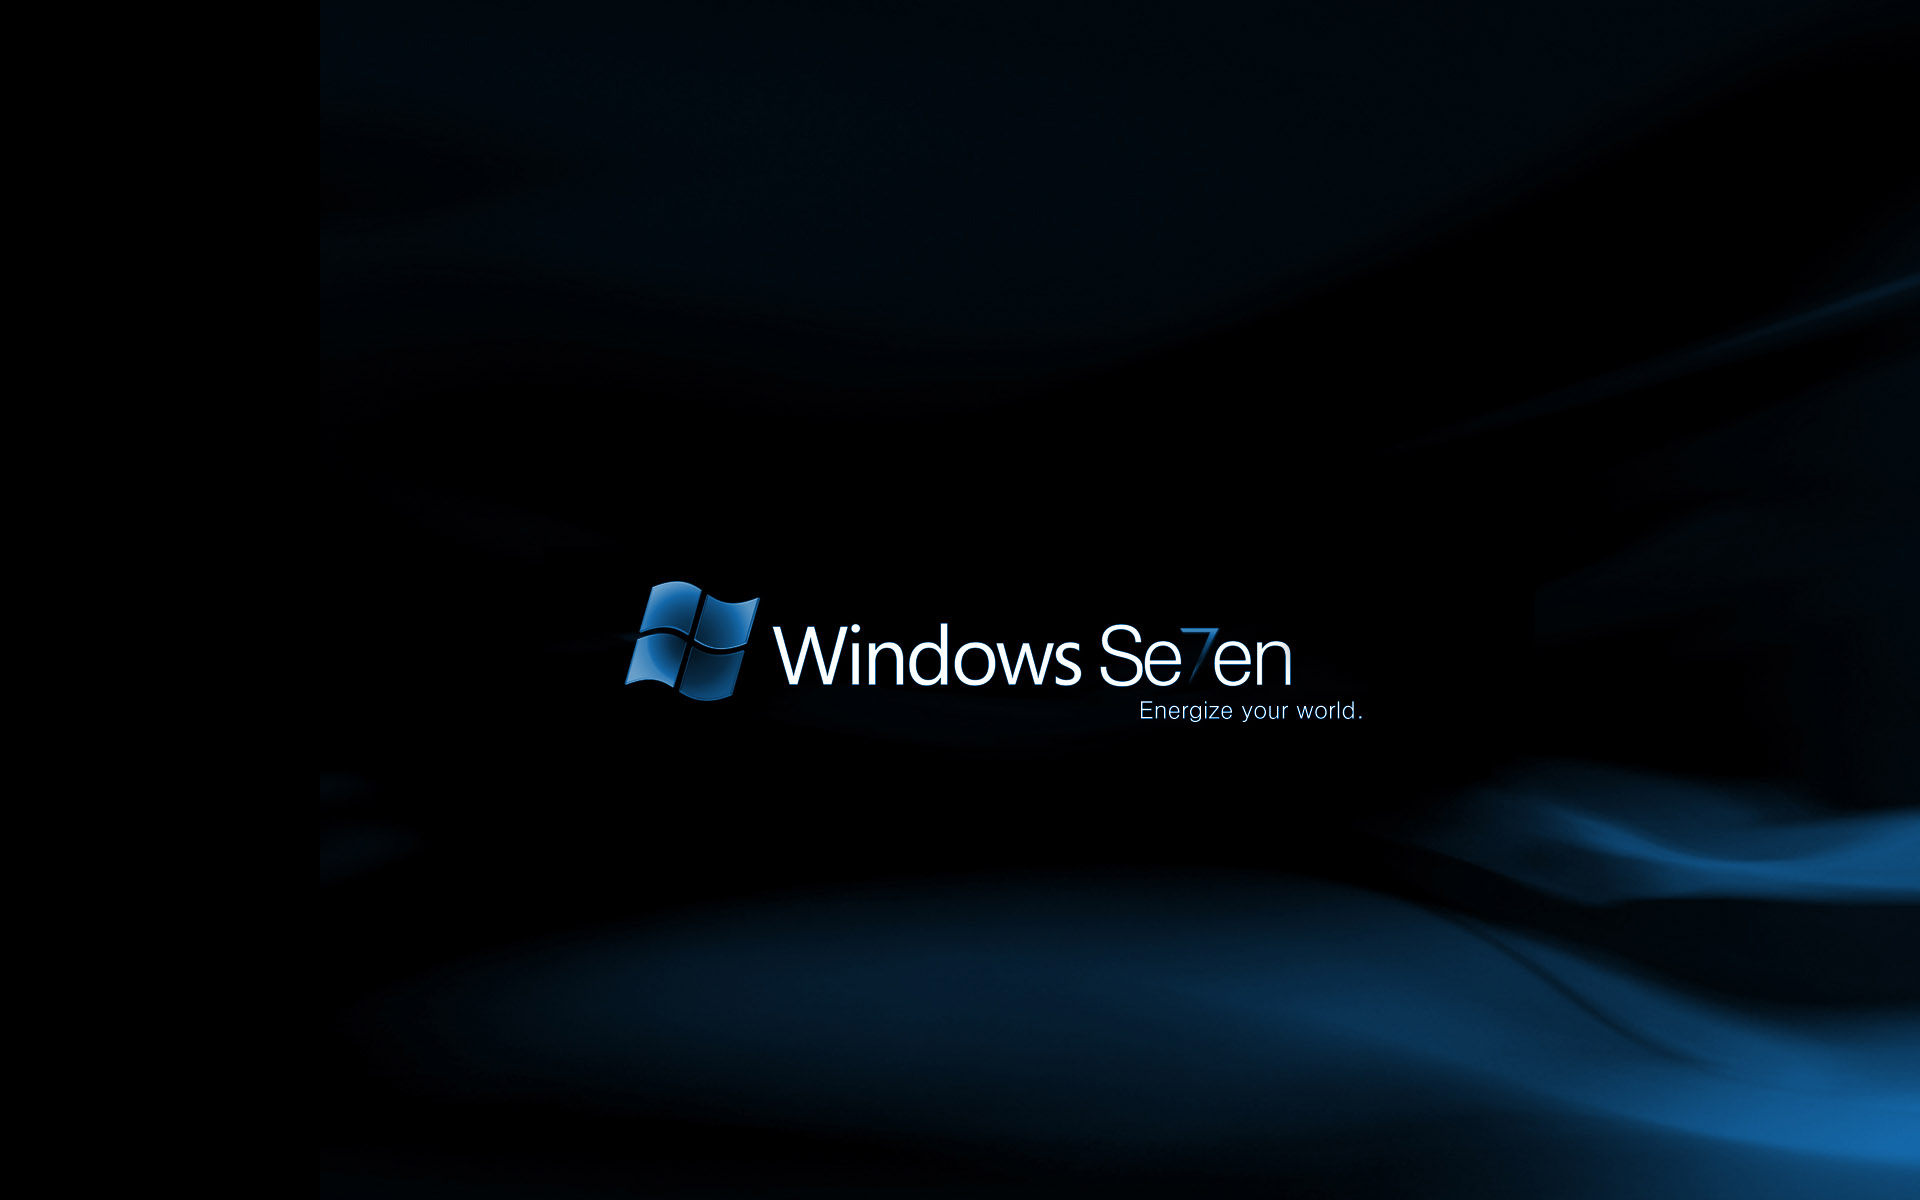 Windows 7 Wallpaper Best Download 2 1920x1200